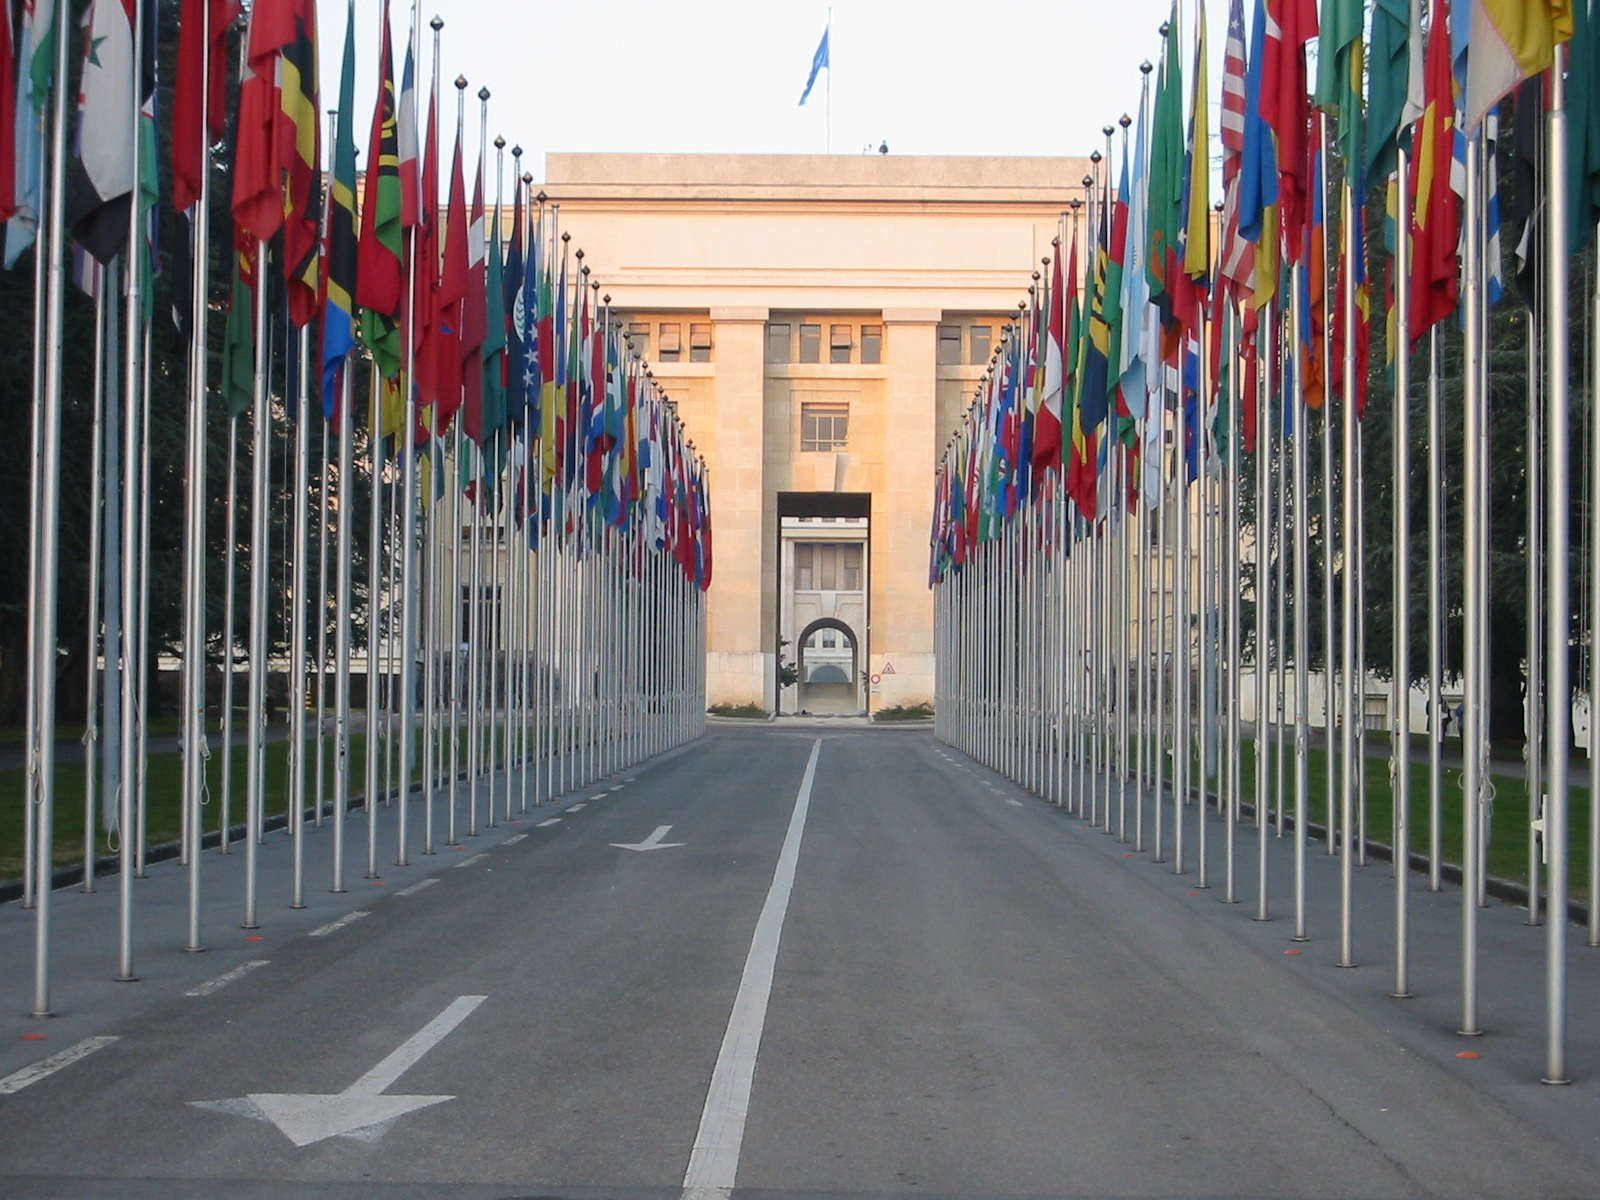 View of the United Nations Palais des Nations in Geneva, Switzerland